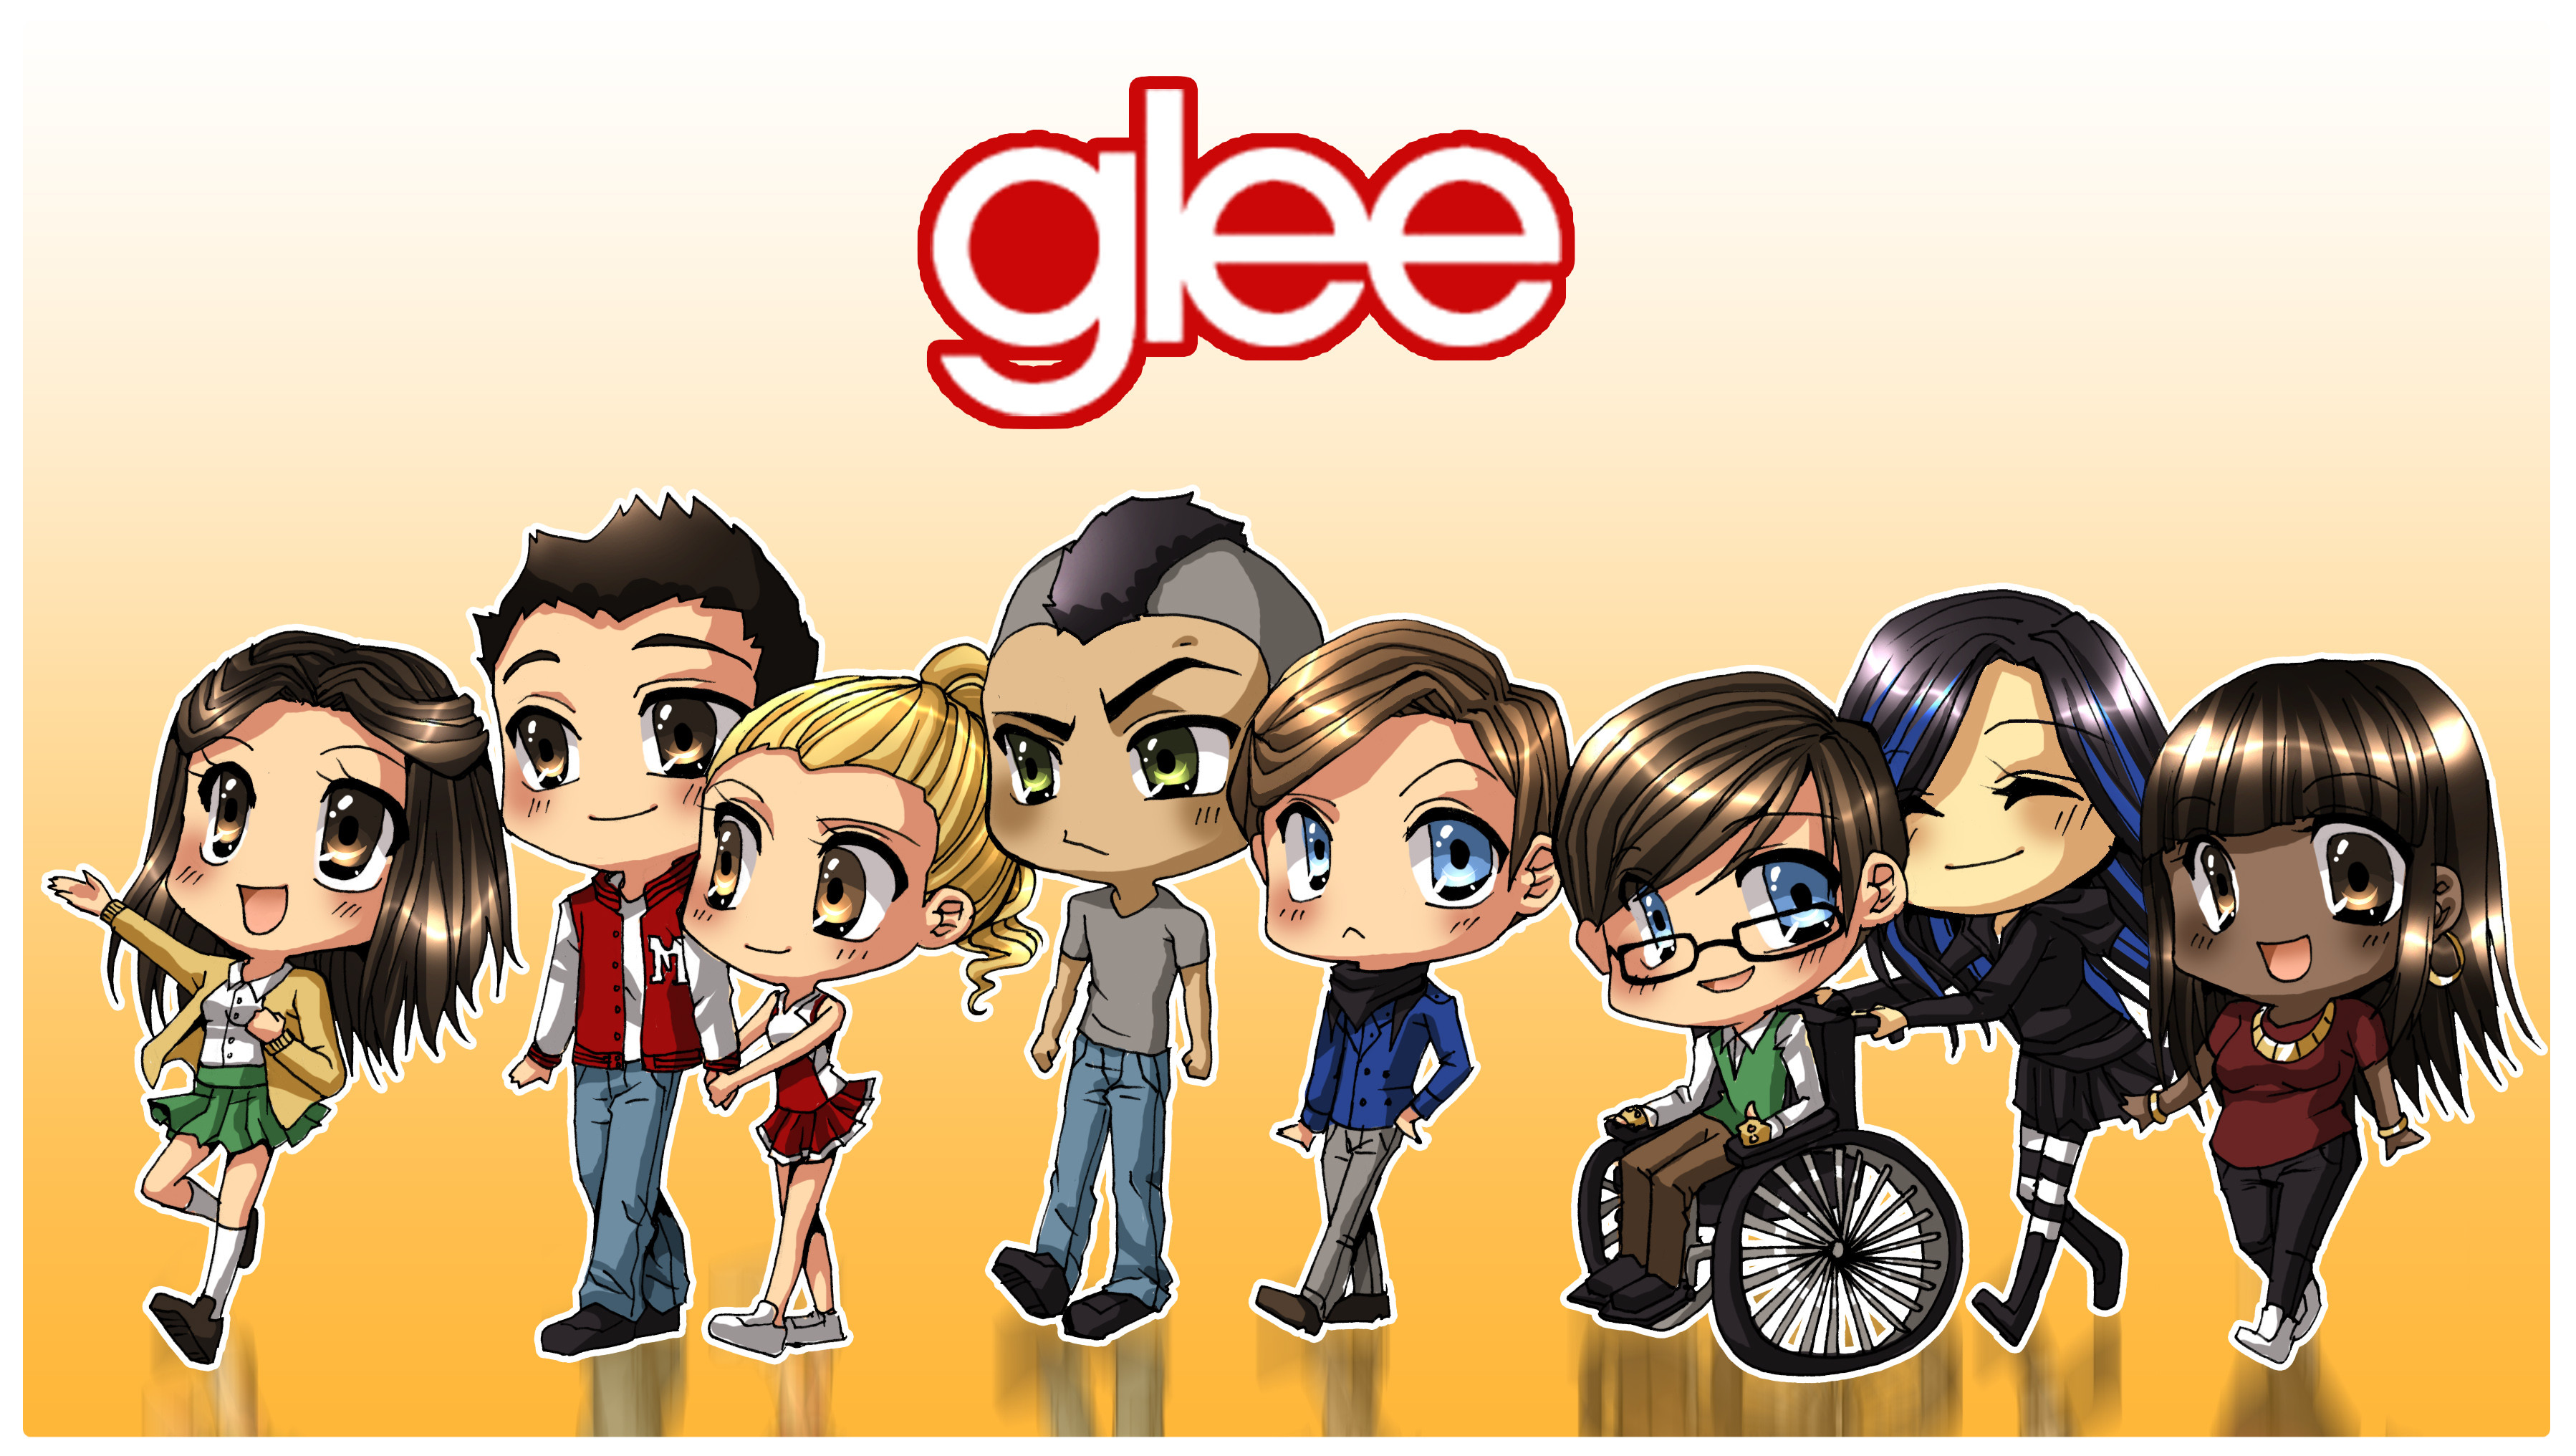 Res: 3596x2032, Glee Wallpapers